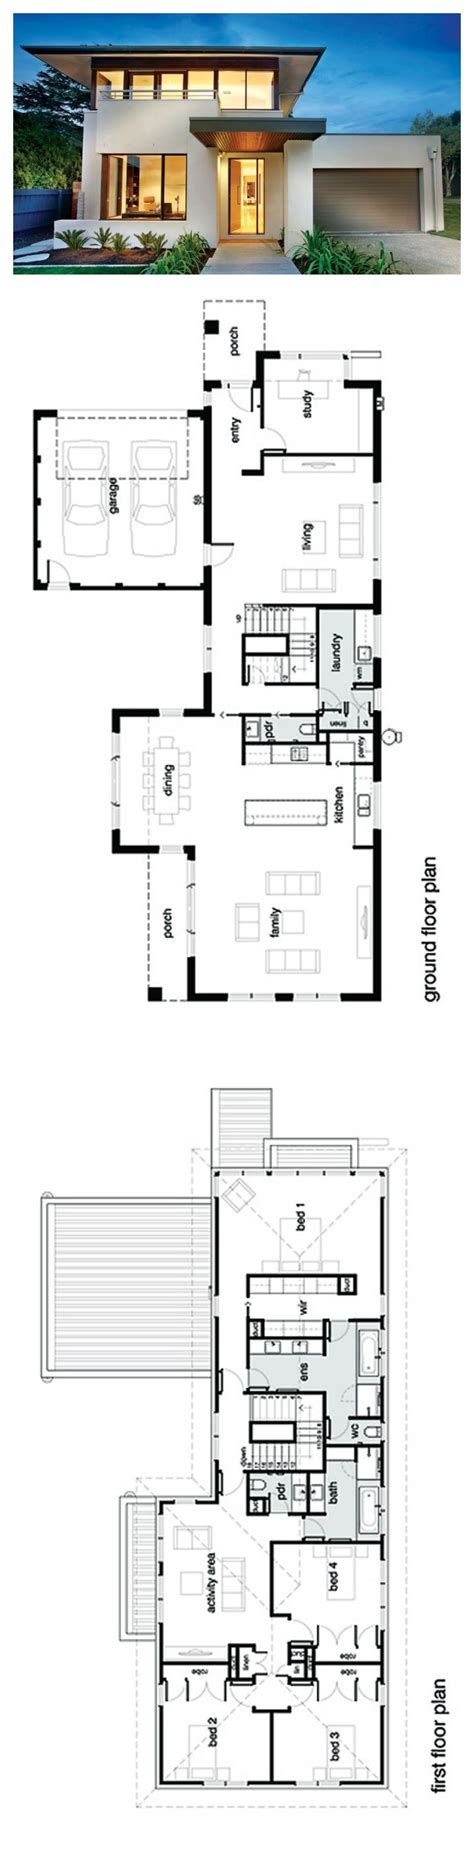 floor plans for modern homes best 25 modern house plans ideas on pinterest